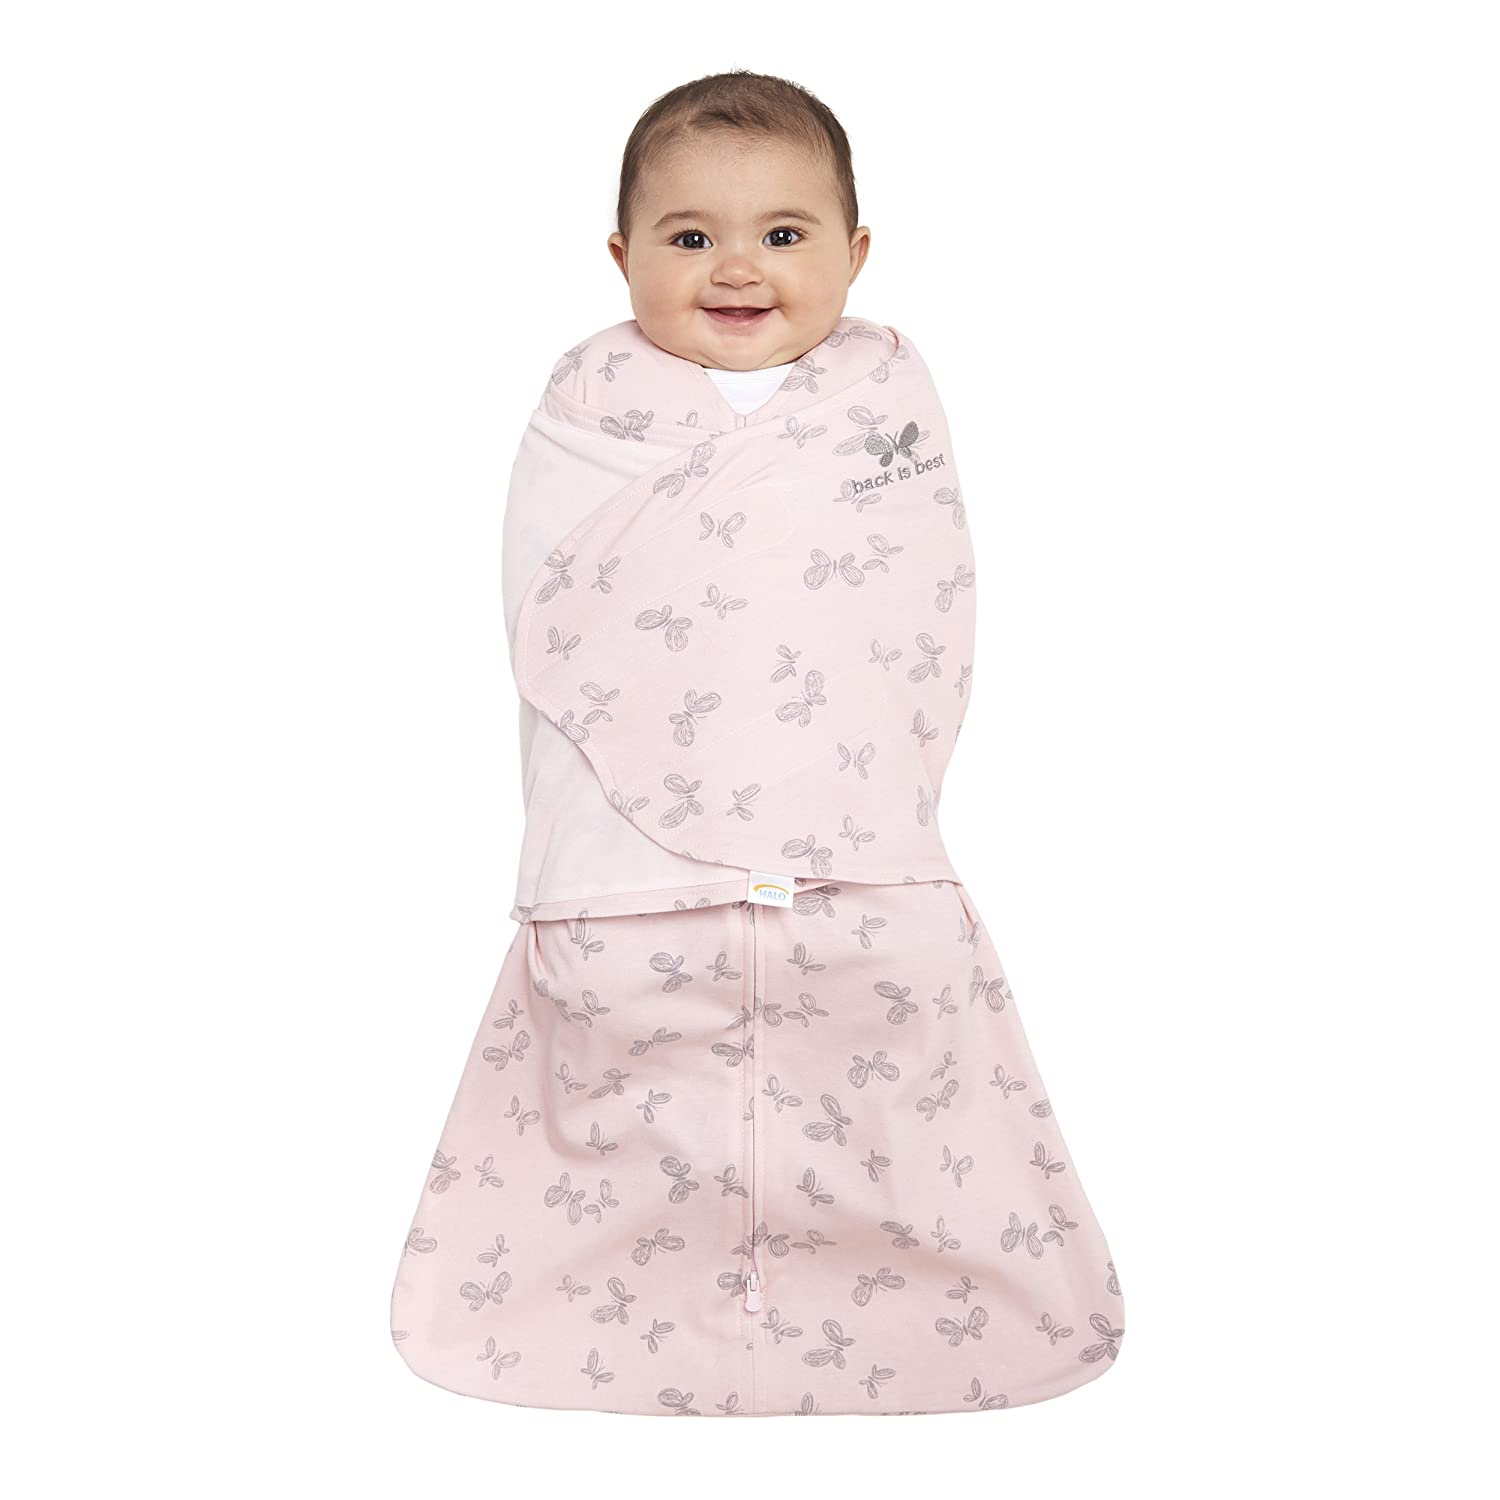 Halo Innovations Sleep Sack Cotton Swaddle, Pink Butterfly Scribble, Newborn 12003